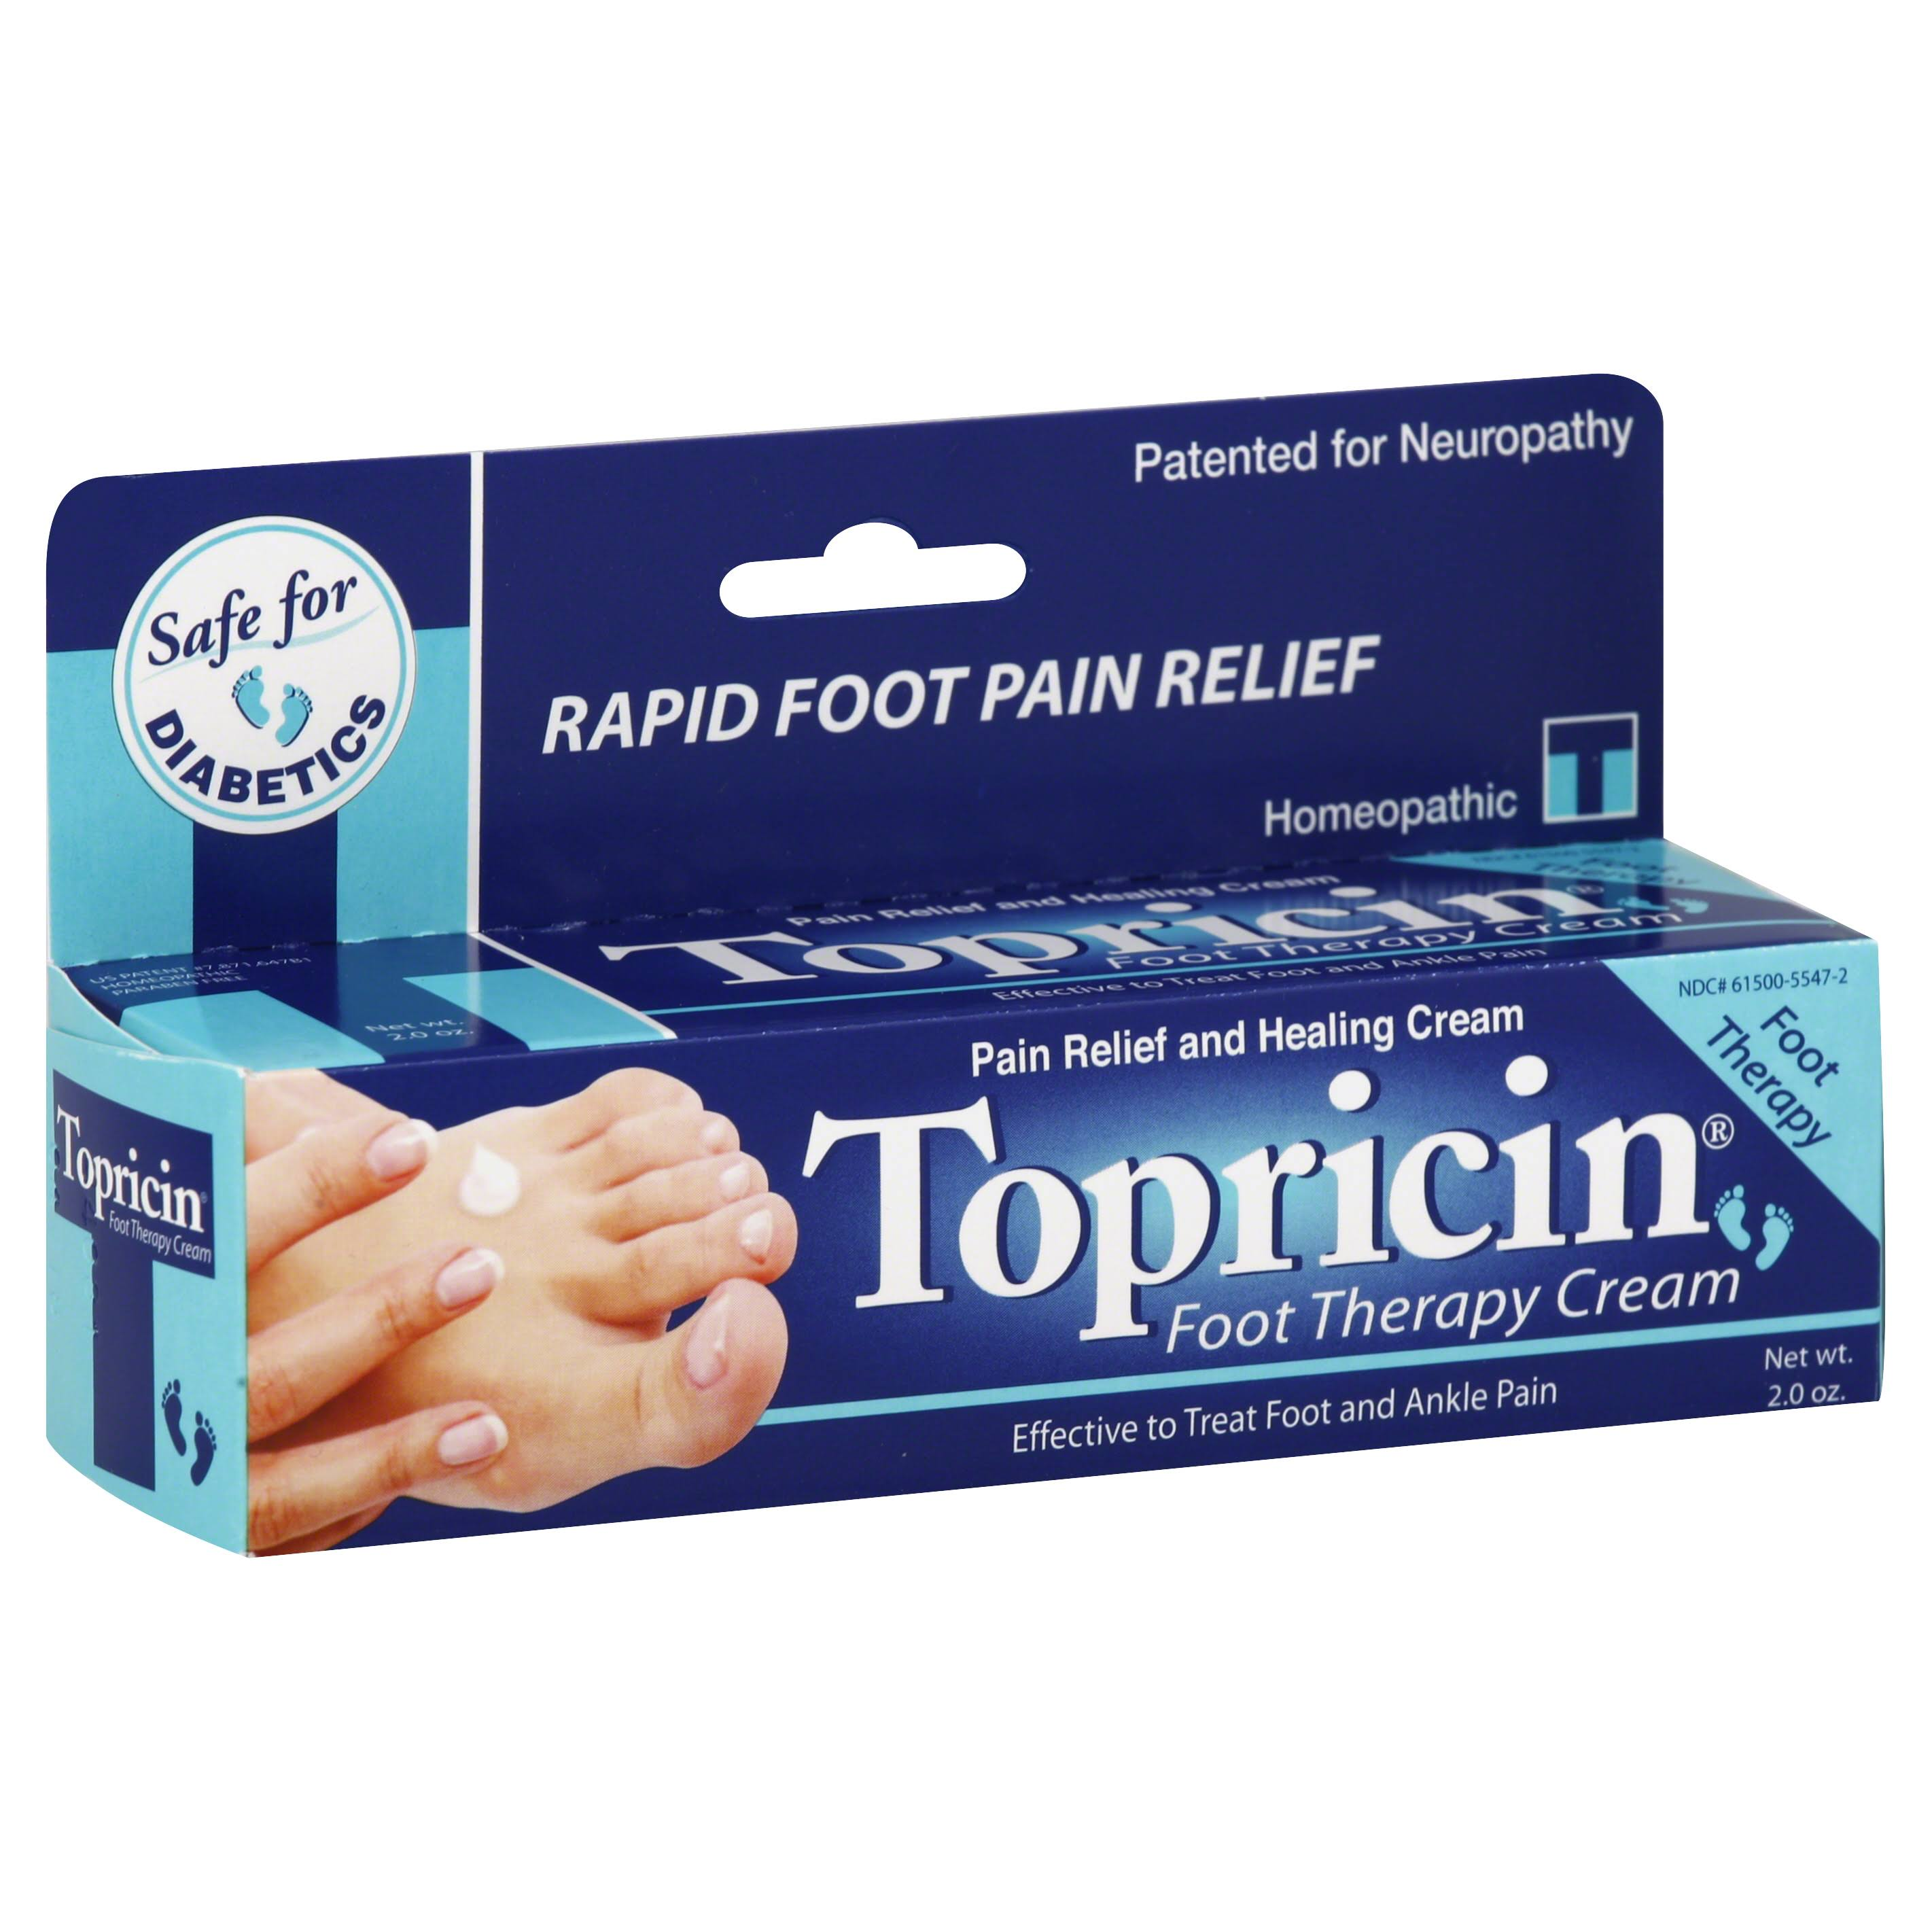 Topricin Foot Therapy Cream - 2oz